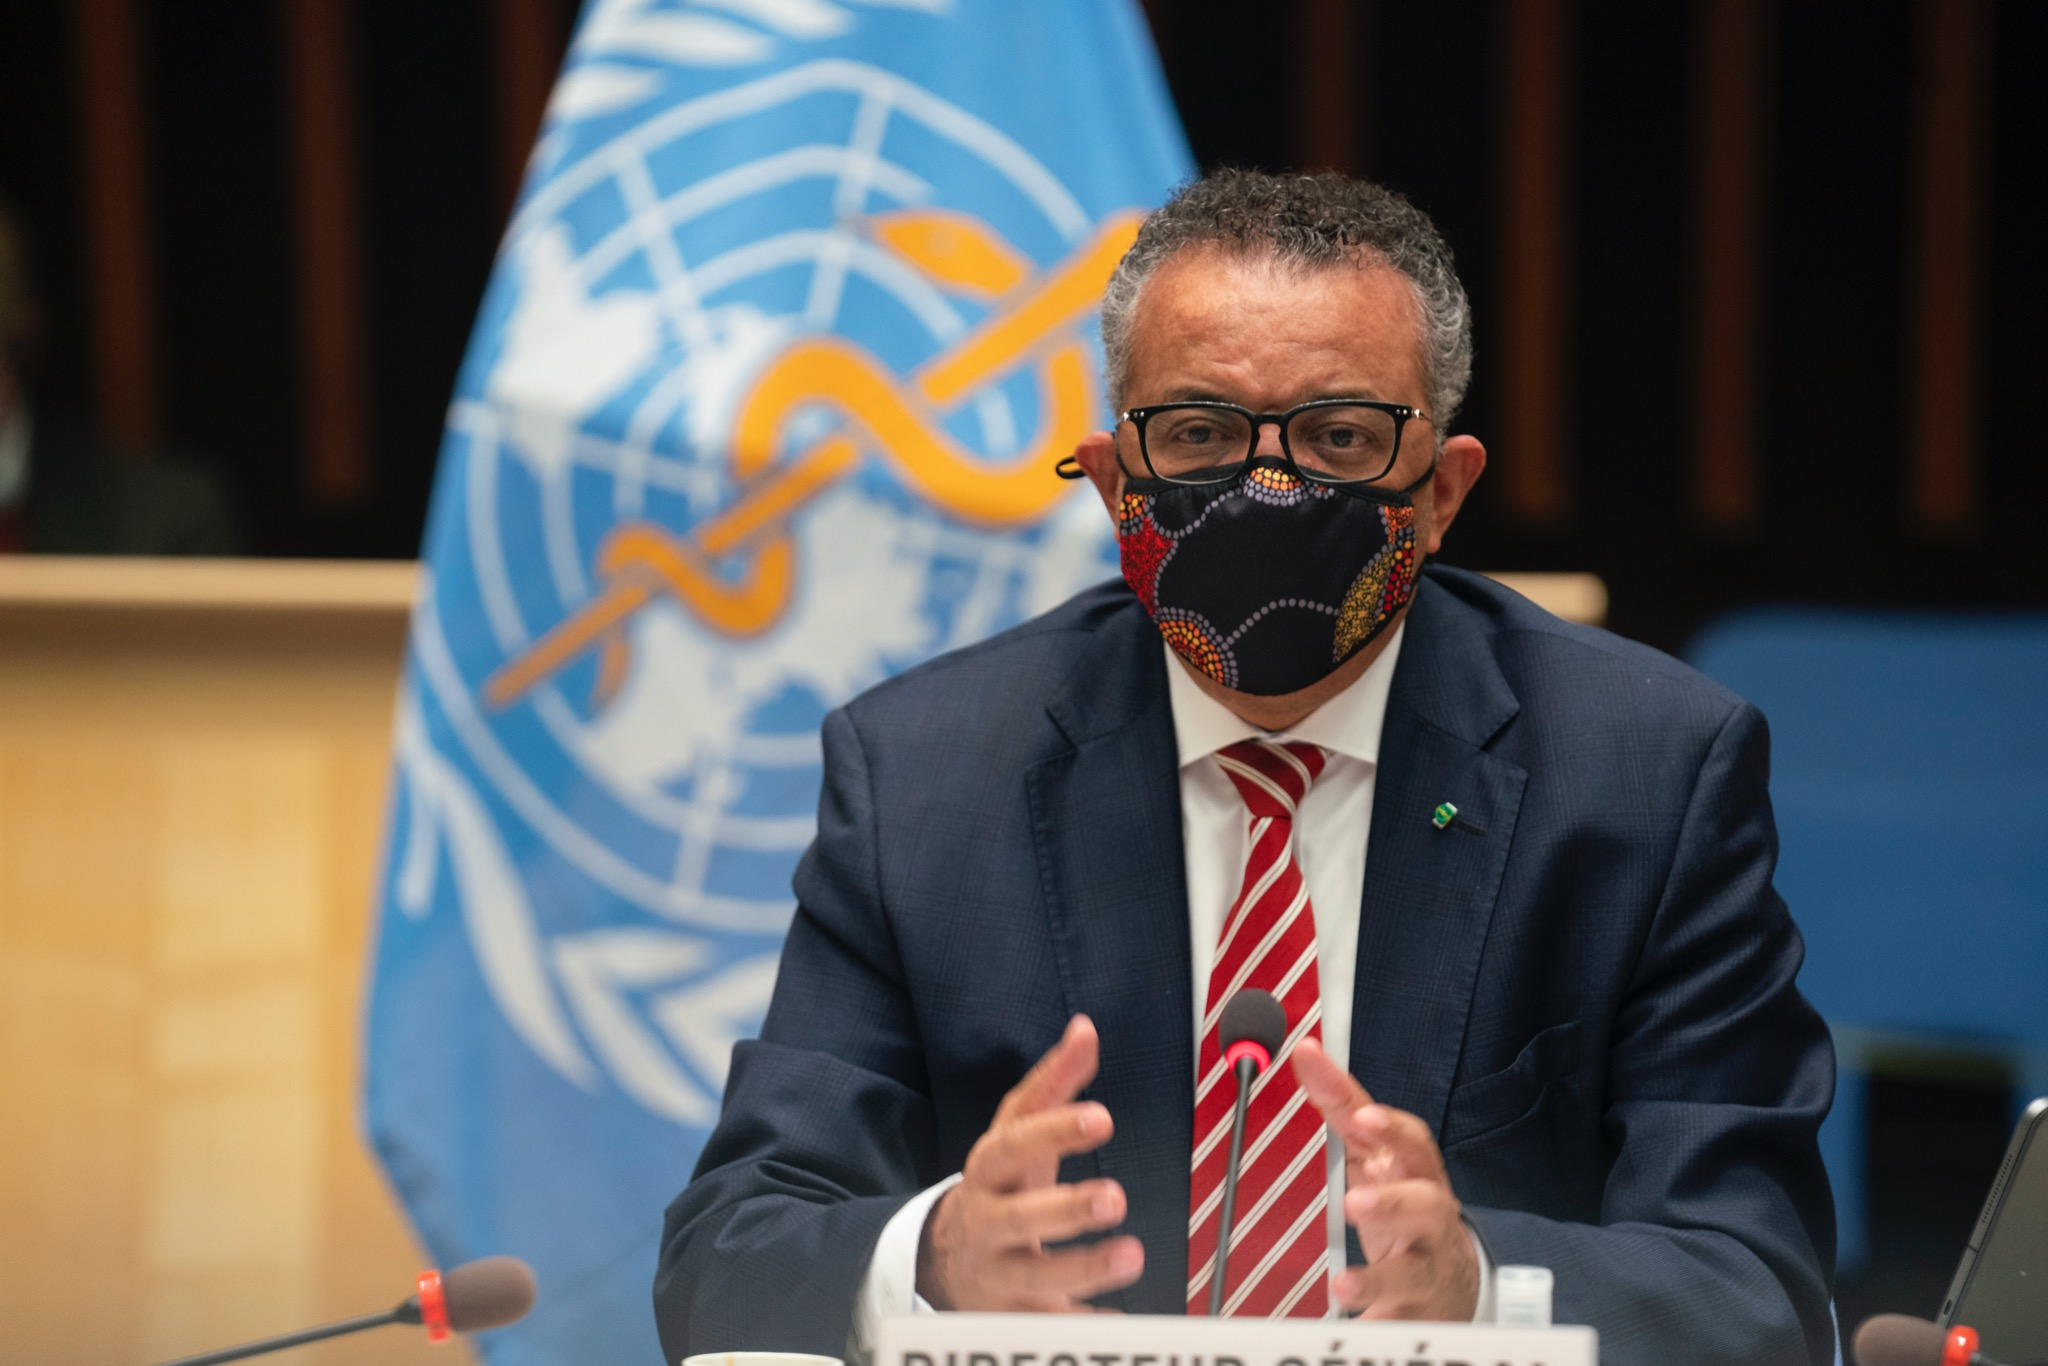 WHO director-general Tedros Adhanom Ghebreyesus at the meeting of the organisation's executive board. Photo courtesy: Twitter/@WHO